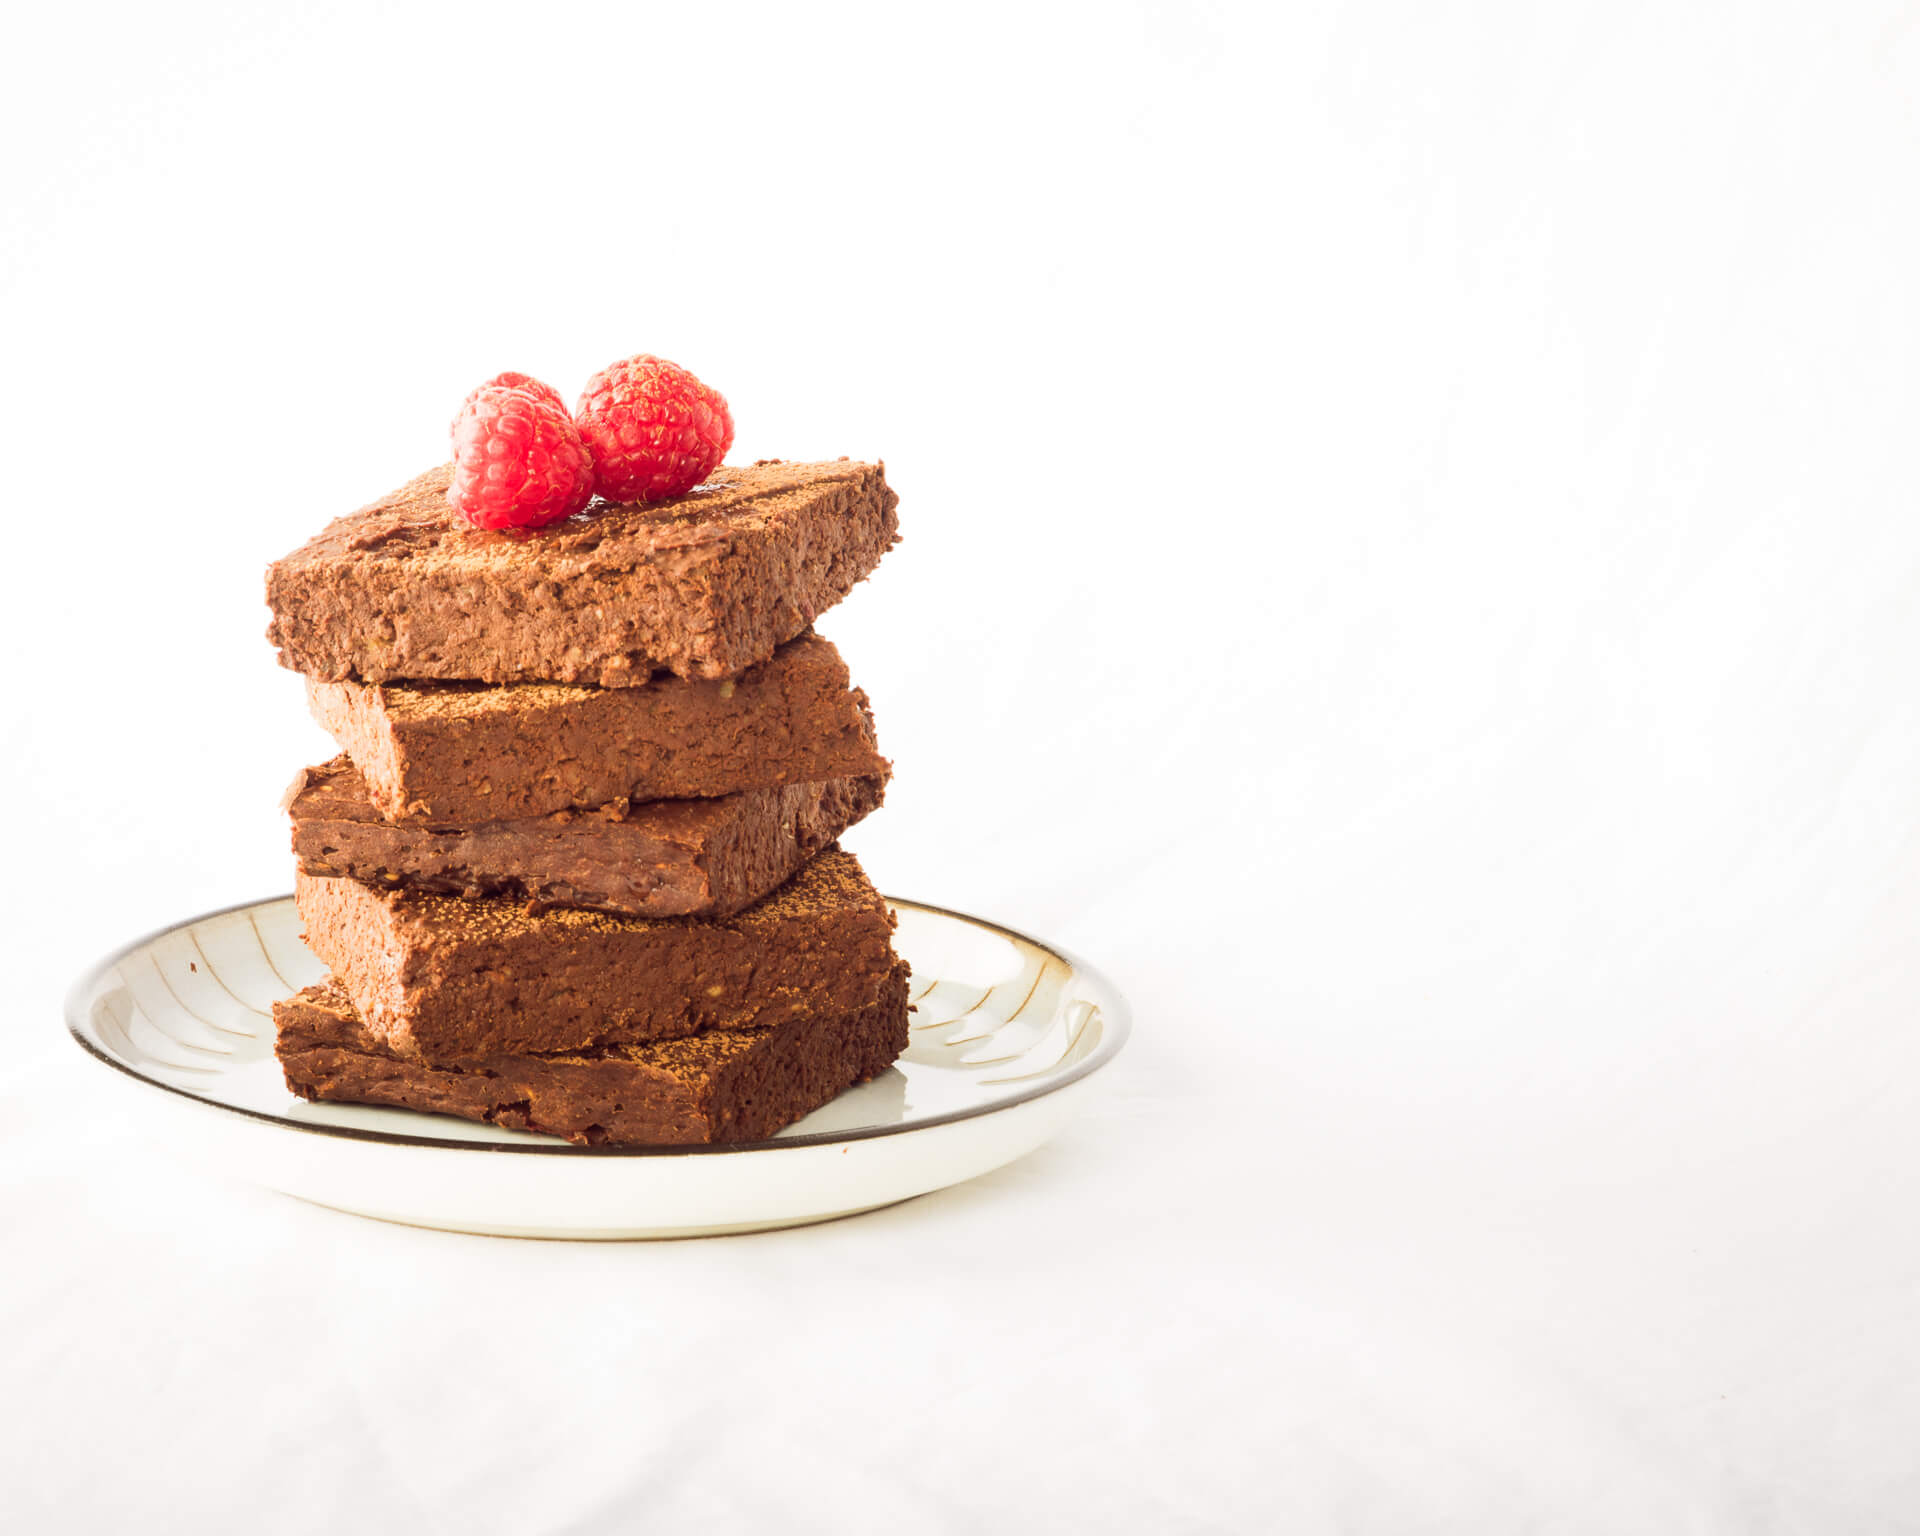 Chocolate Brownies Topped With Three Fresh Raspberries In A Stack On A Plate